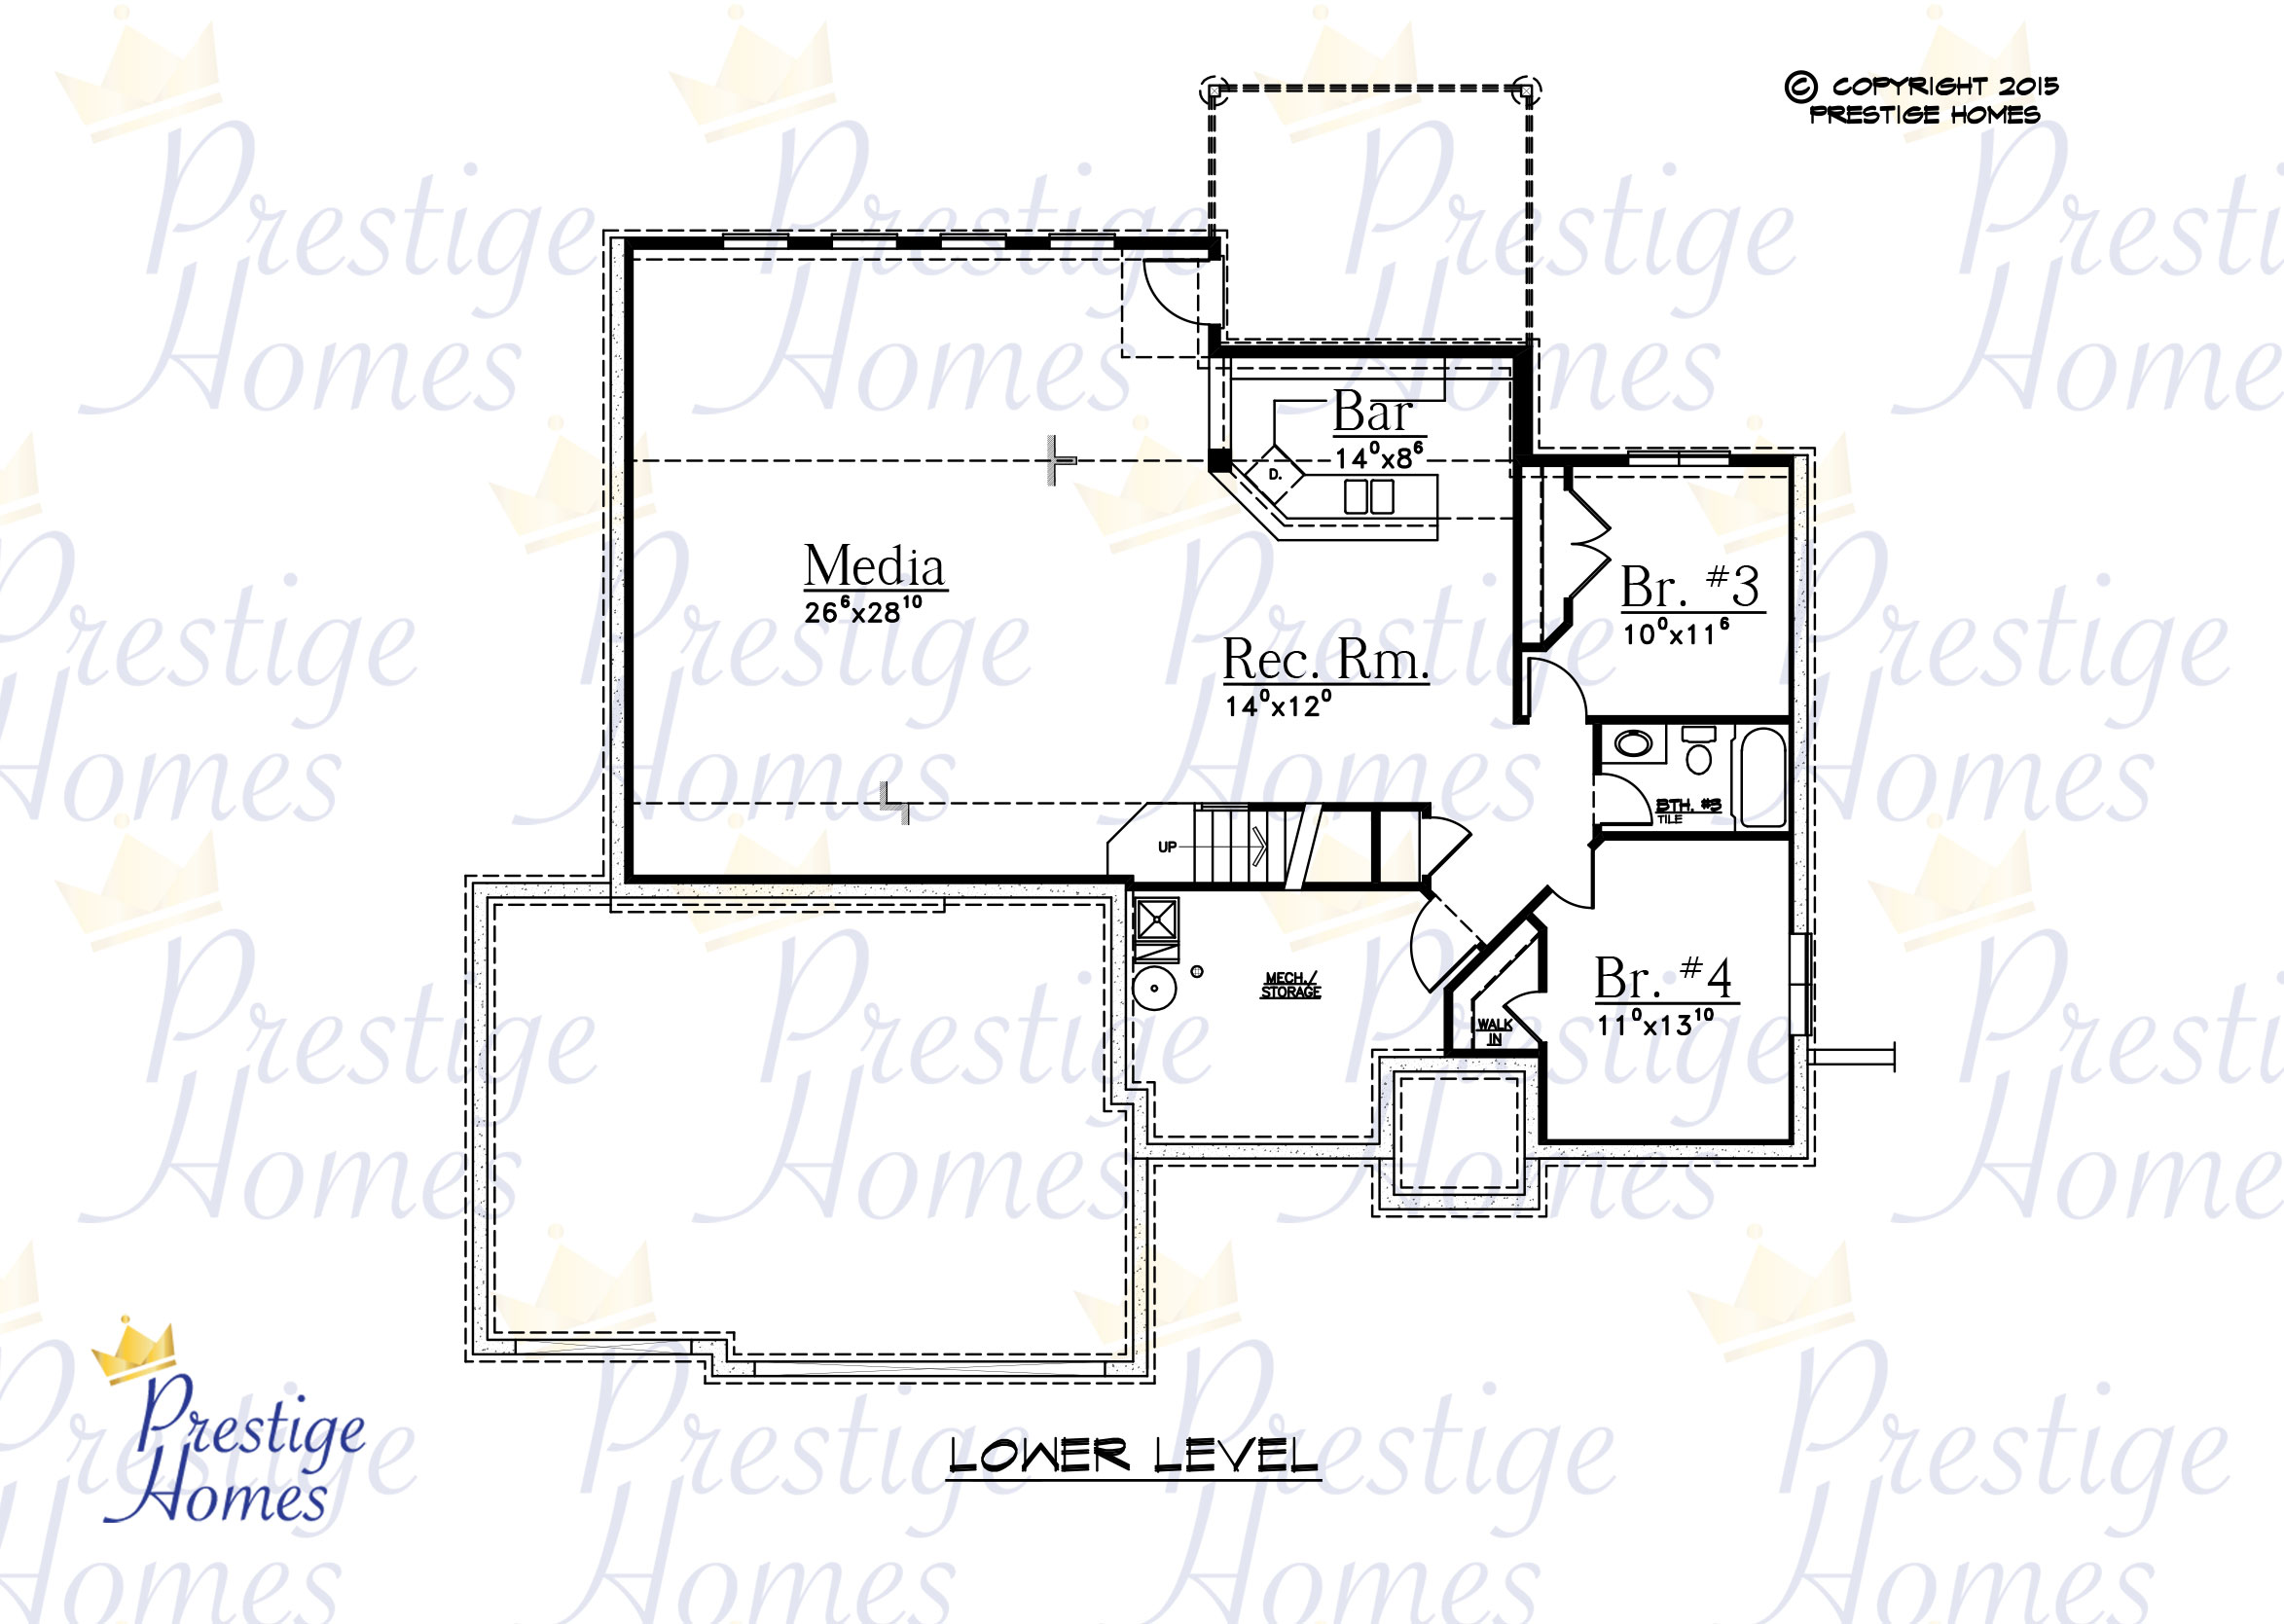 Prestige Homes - Floor Plan - Anna - Lower